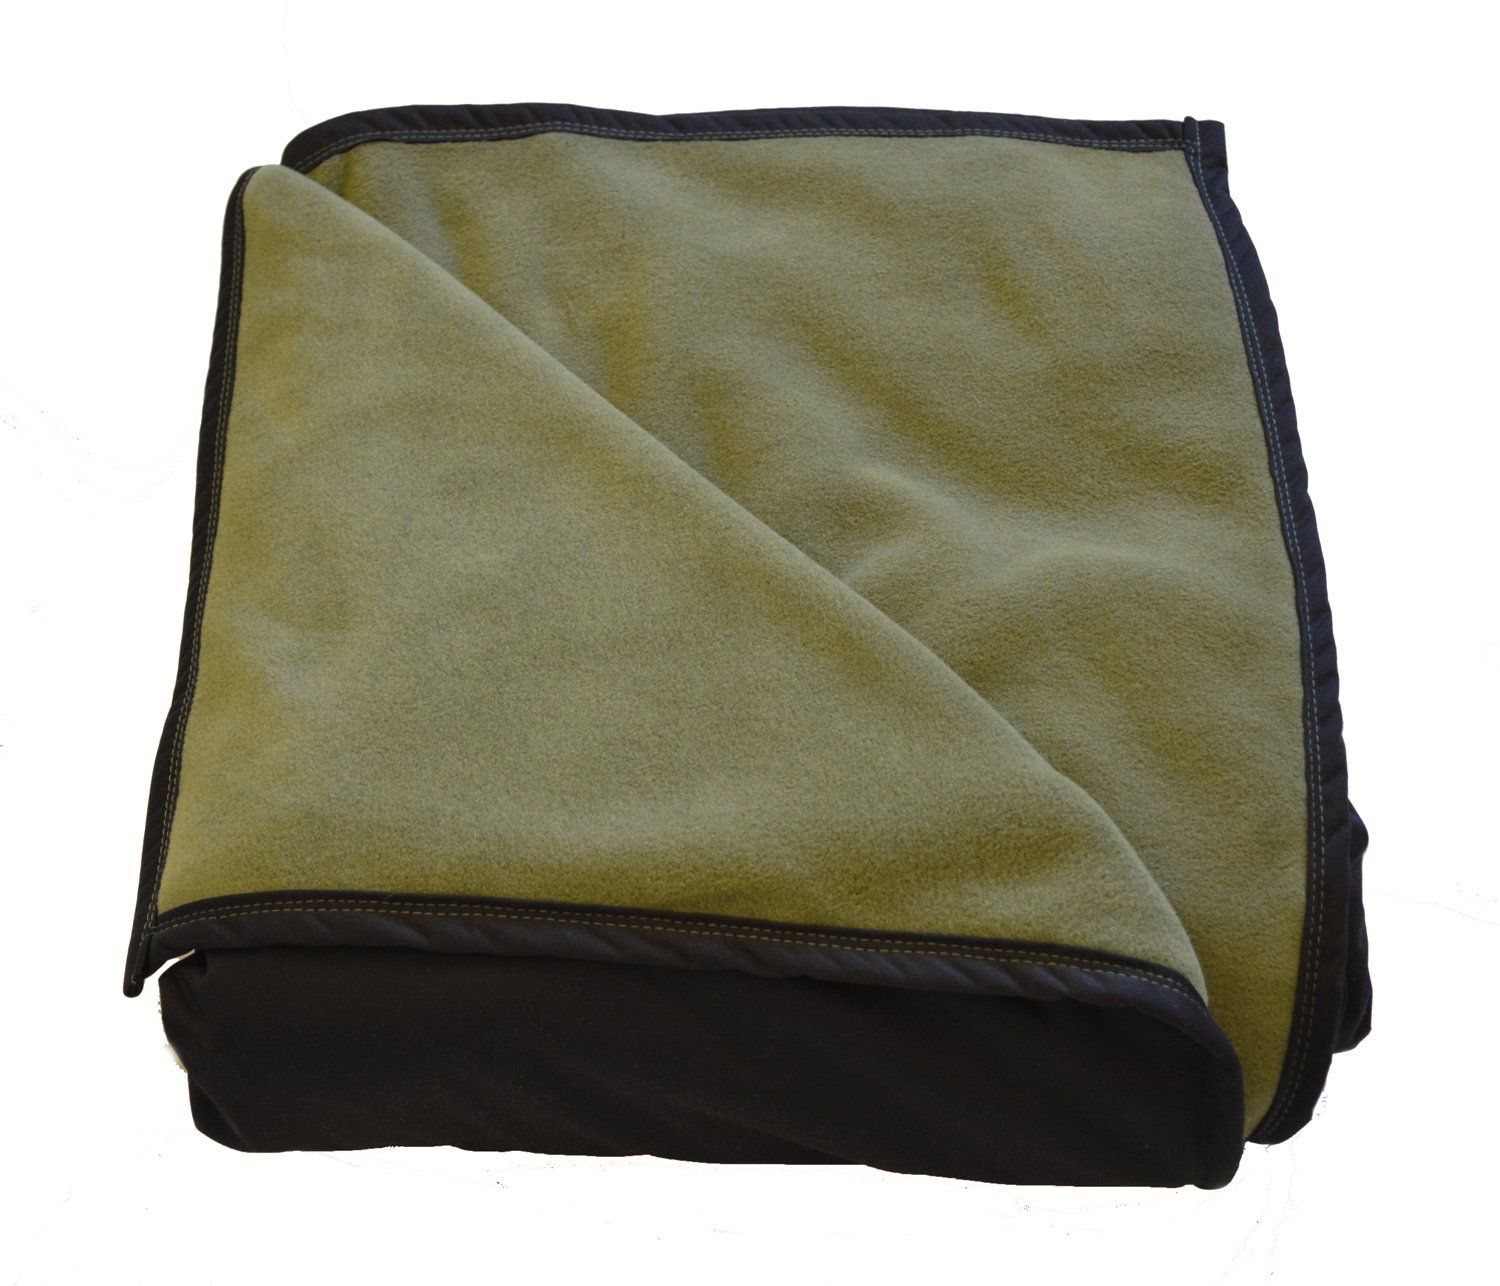 Pin by cheapdogbeds on waterproofwashabledogbeds